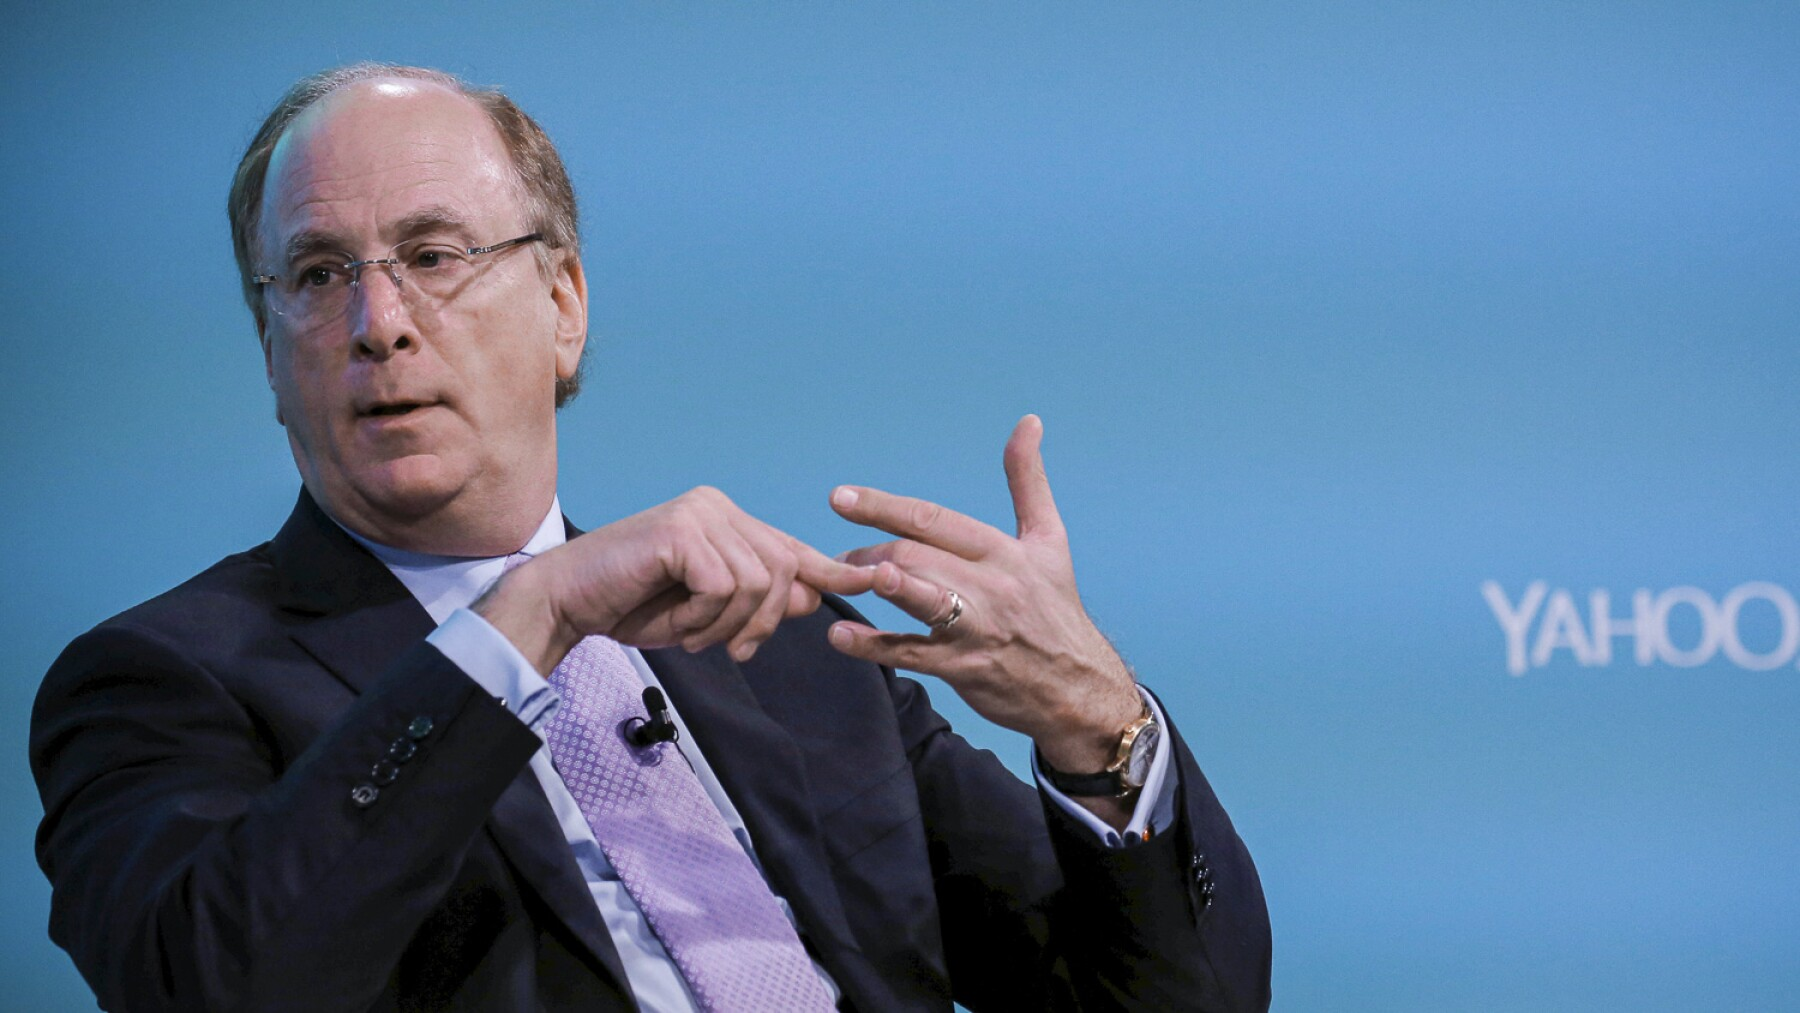 Larry Fink, Chief Executive Officer of BlackRock, takes part in the Yahoo Finance All Markets Summit in New York